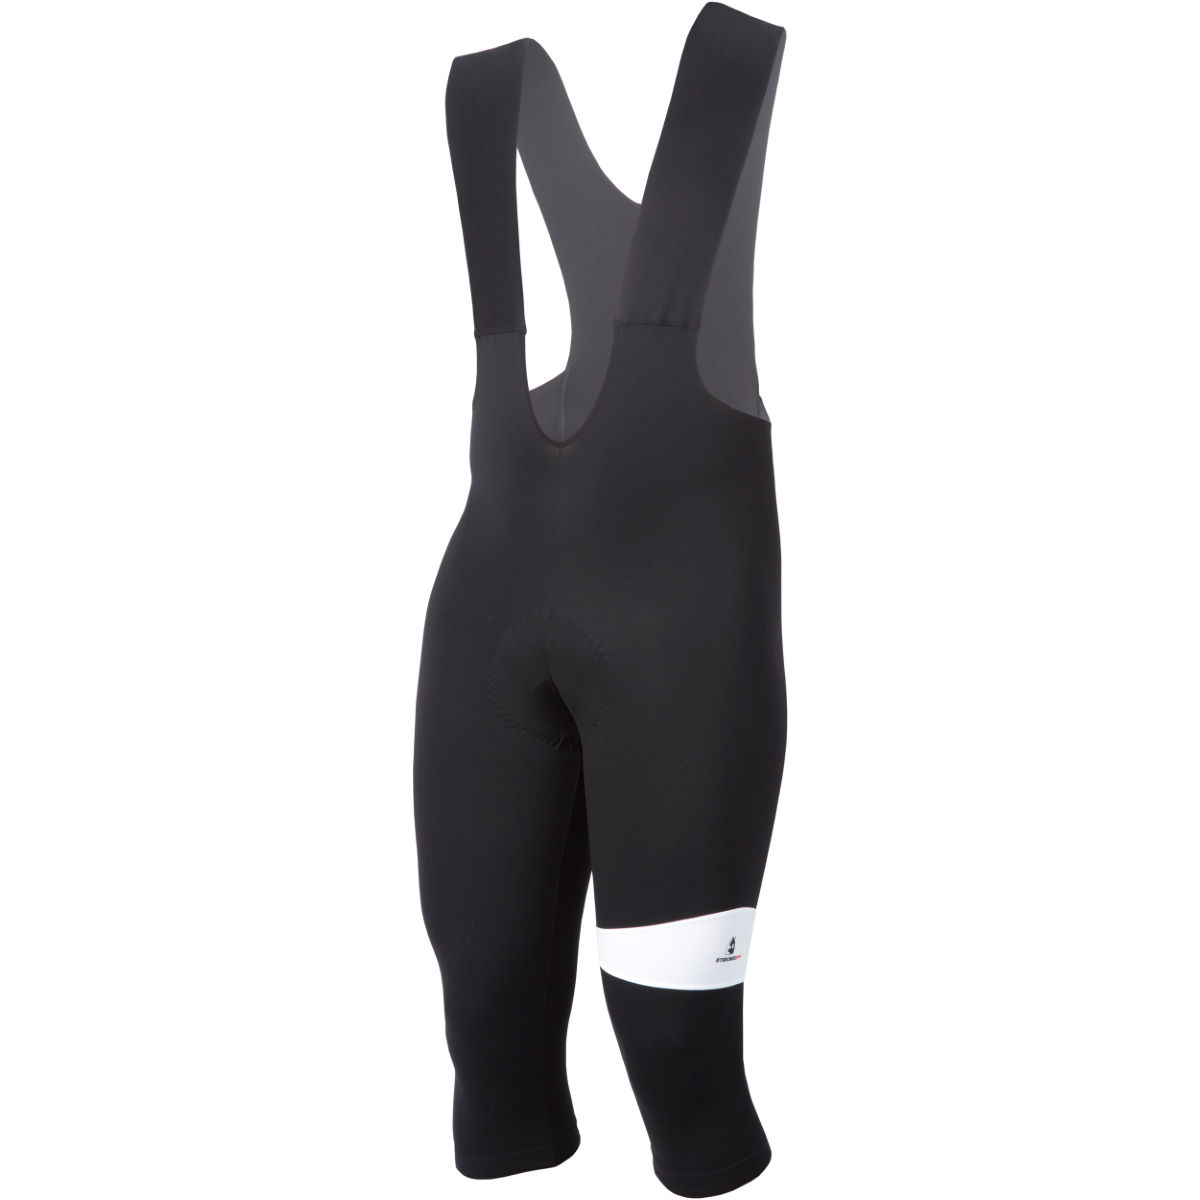 Etxeondo Feather 3/4 Length Bib Tight